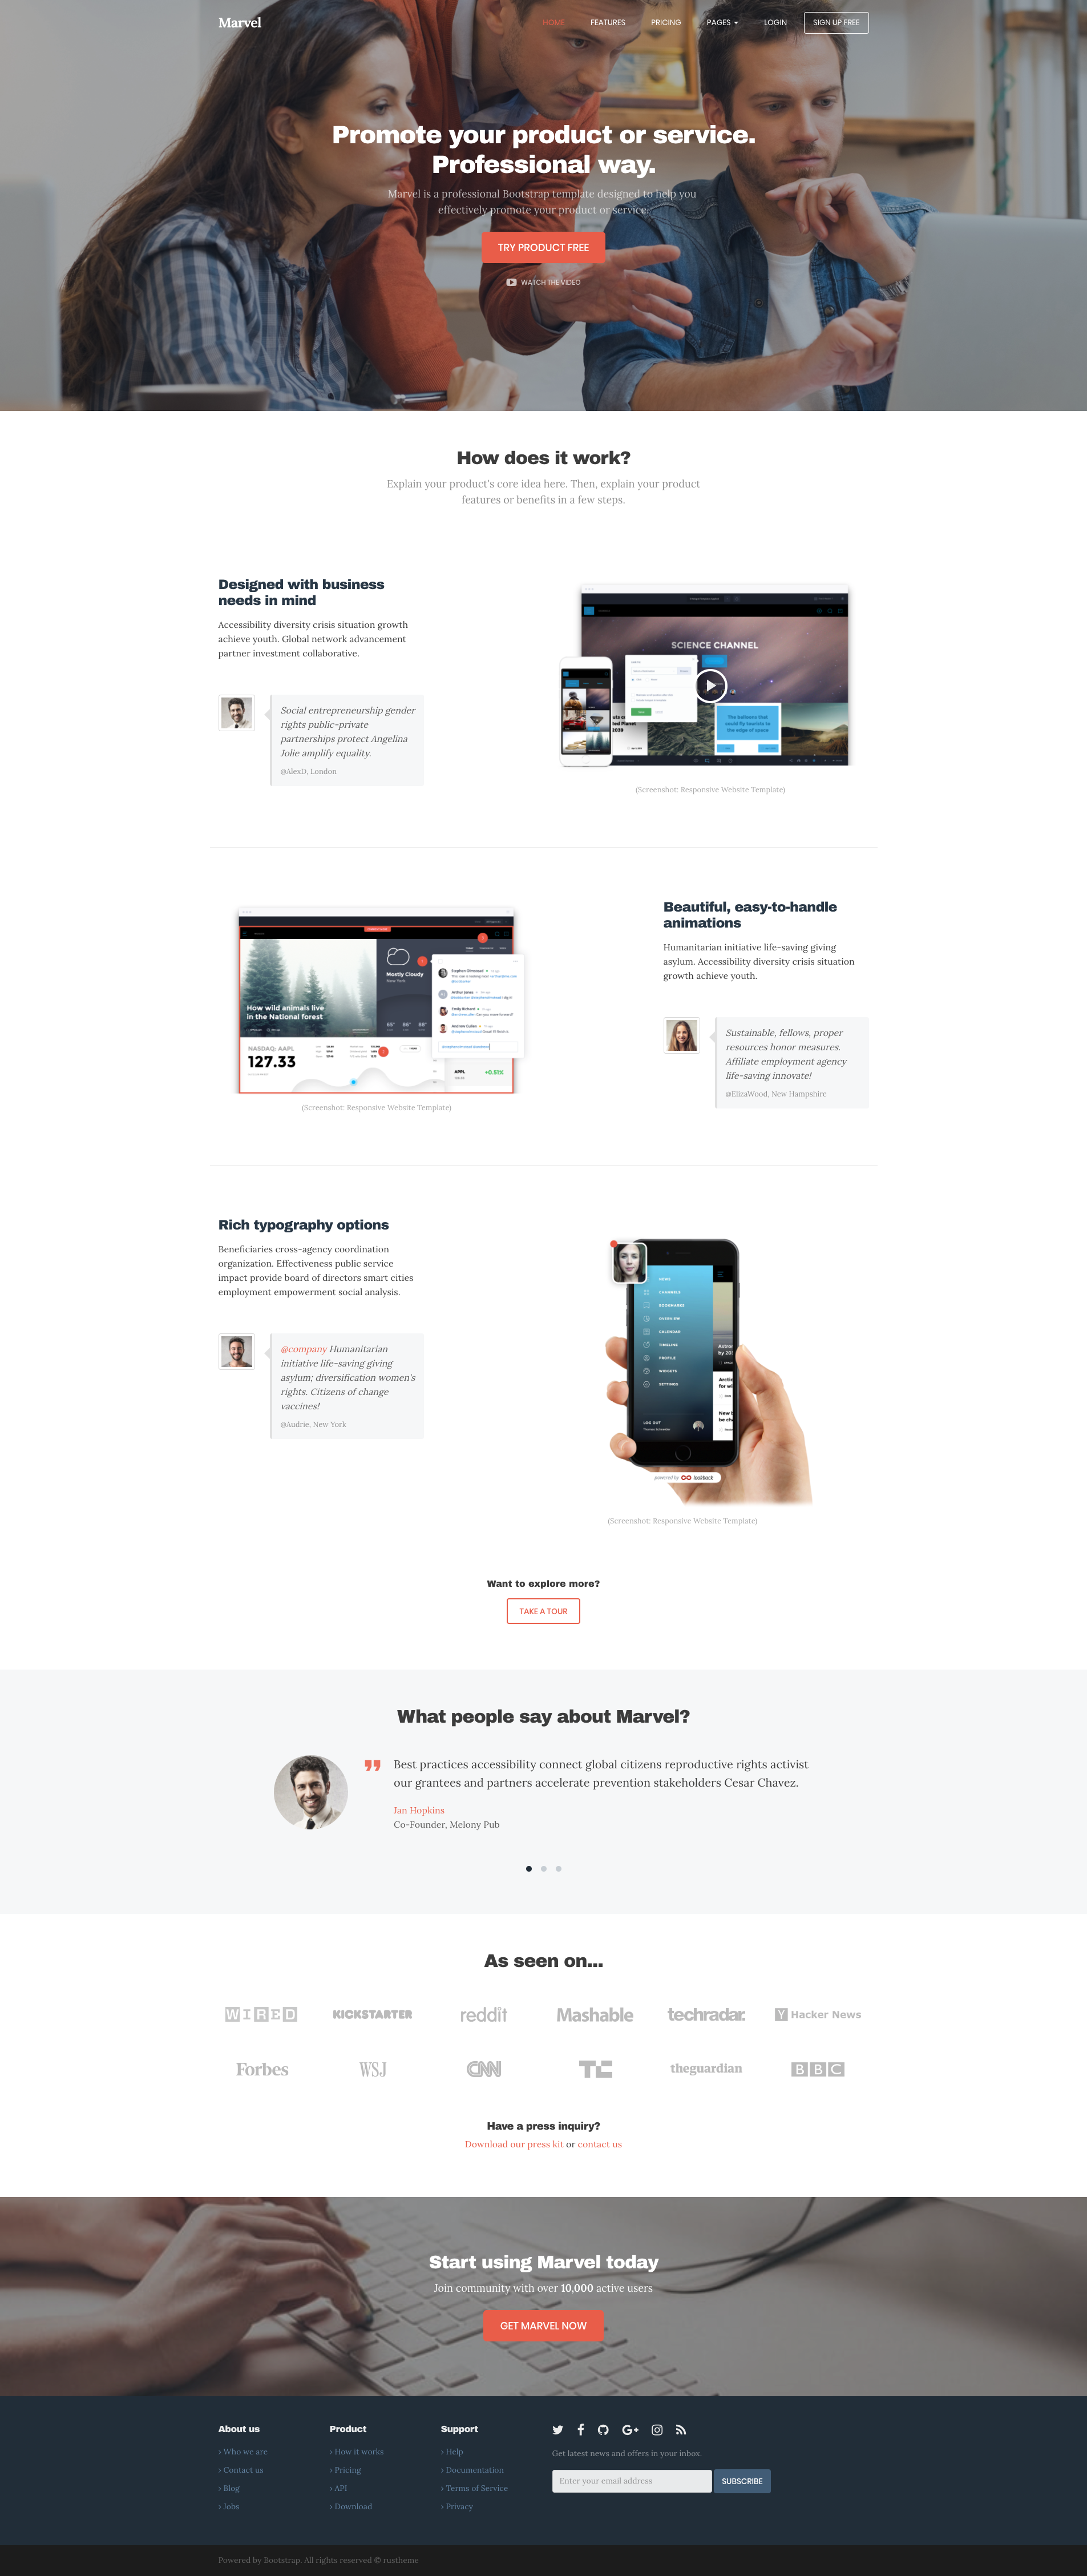 Marvel - HTML template for product promotion  Based on